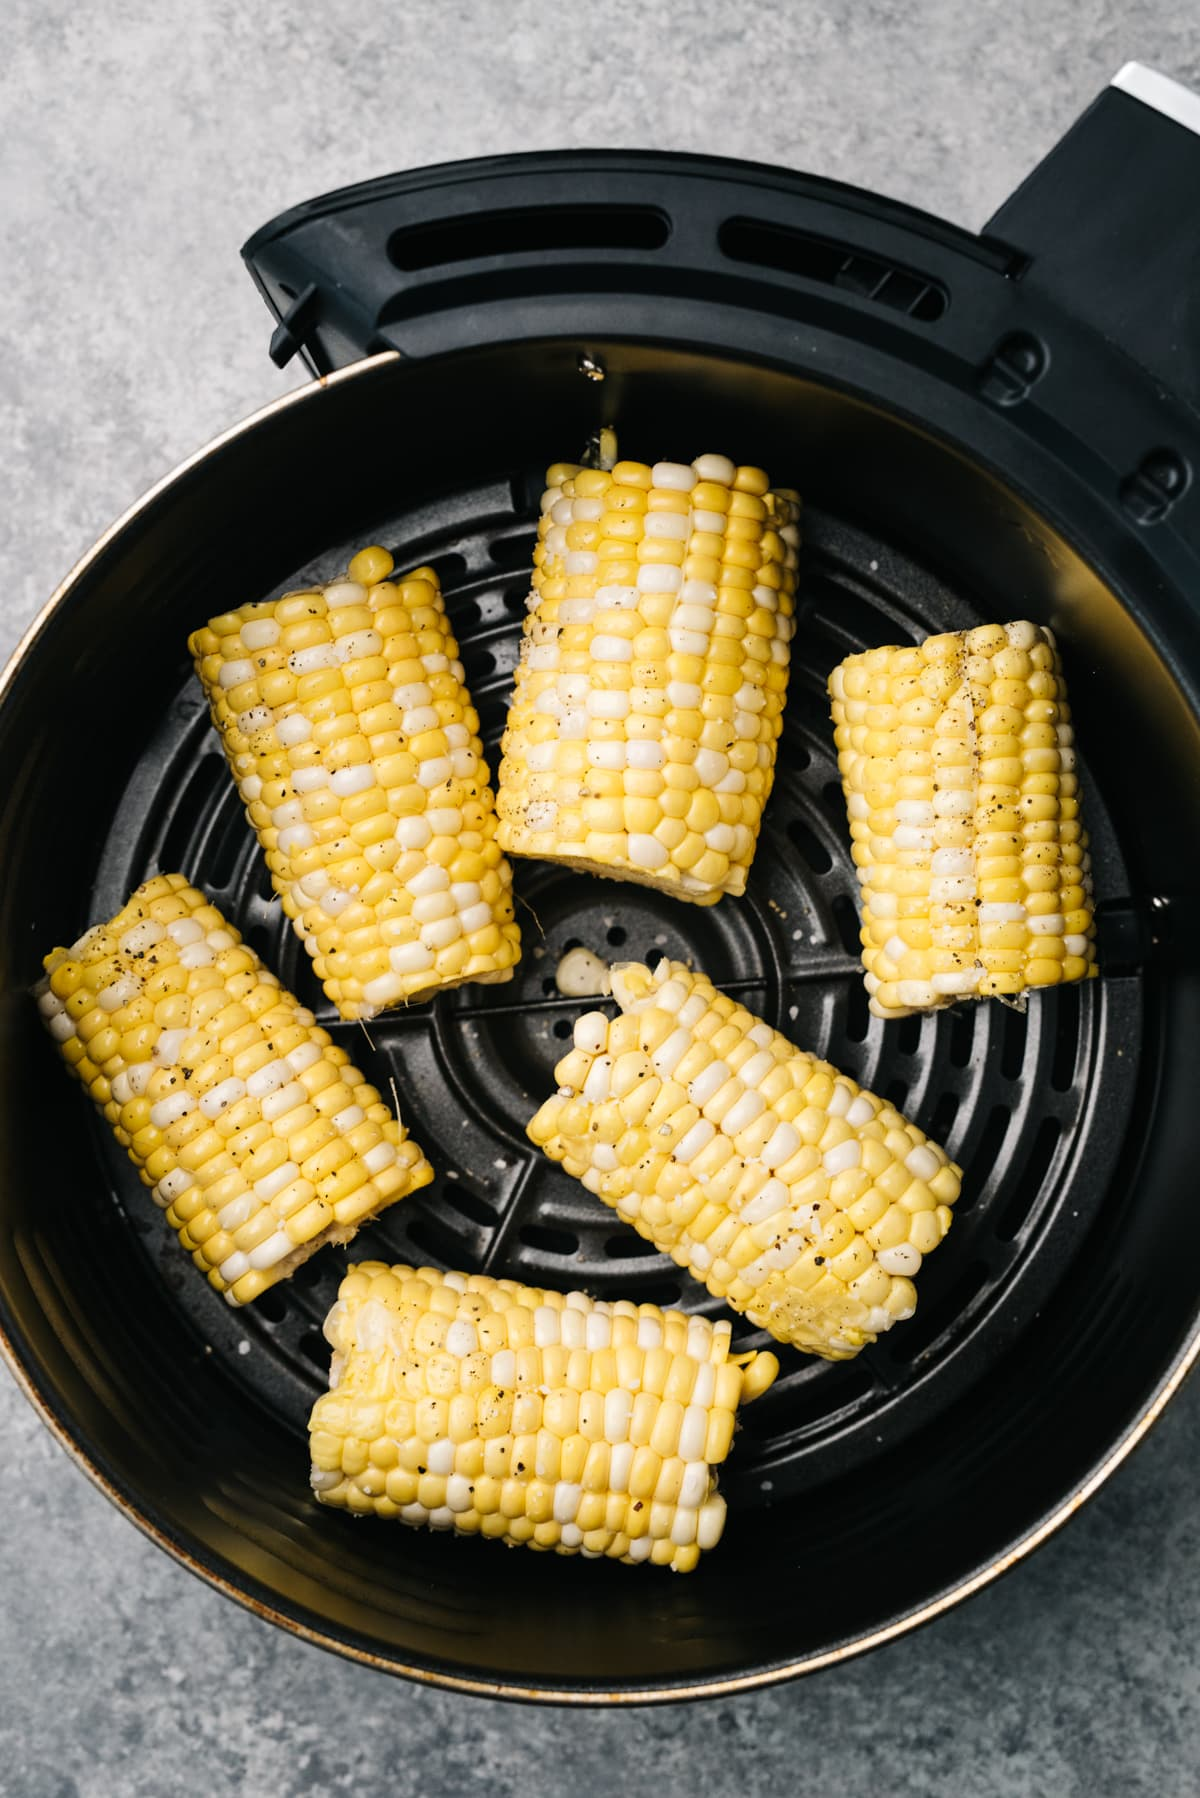 Raw pieces of corn on the cob rubbed with olive oil in the basket of an air fryer.